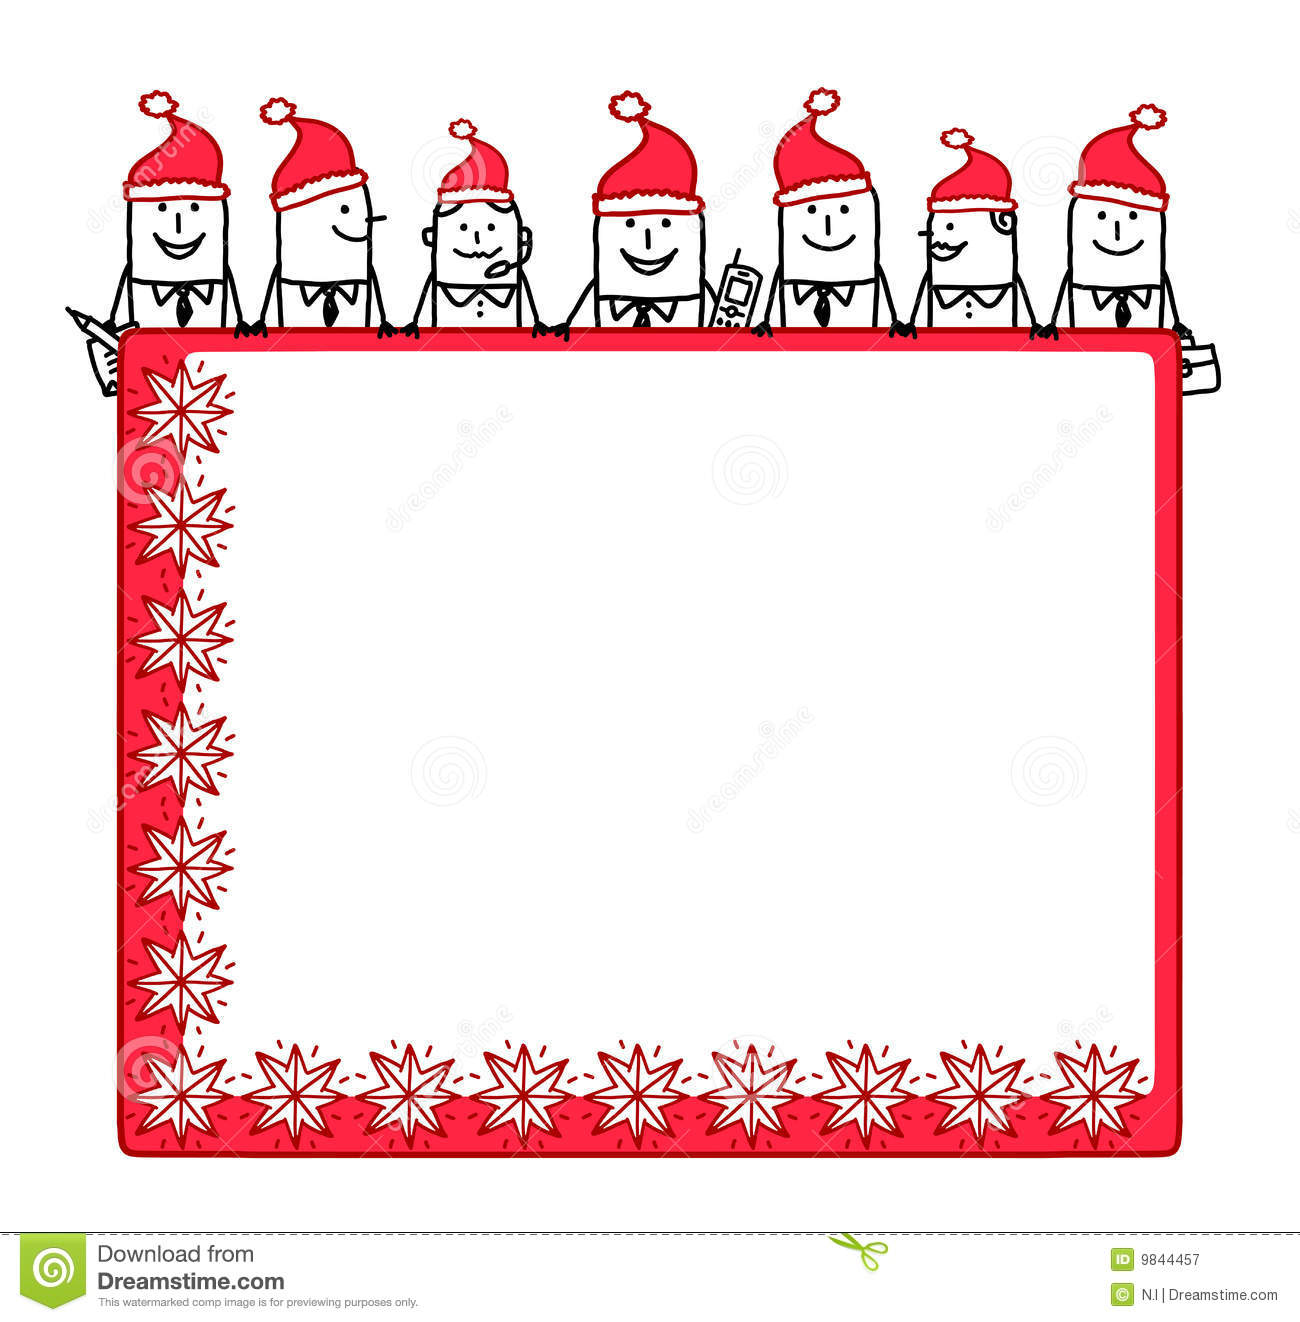 Xmas Party Invite Template as awesome invitations ideas